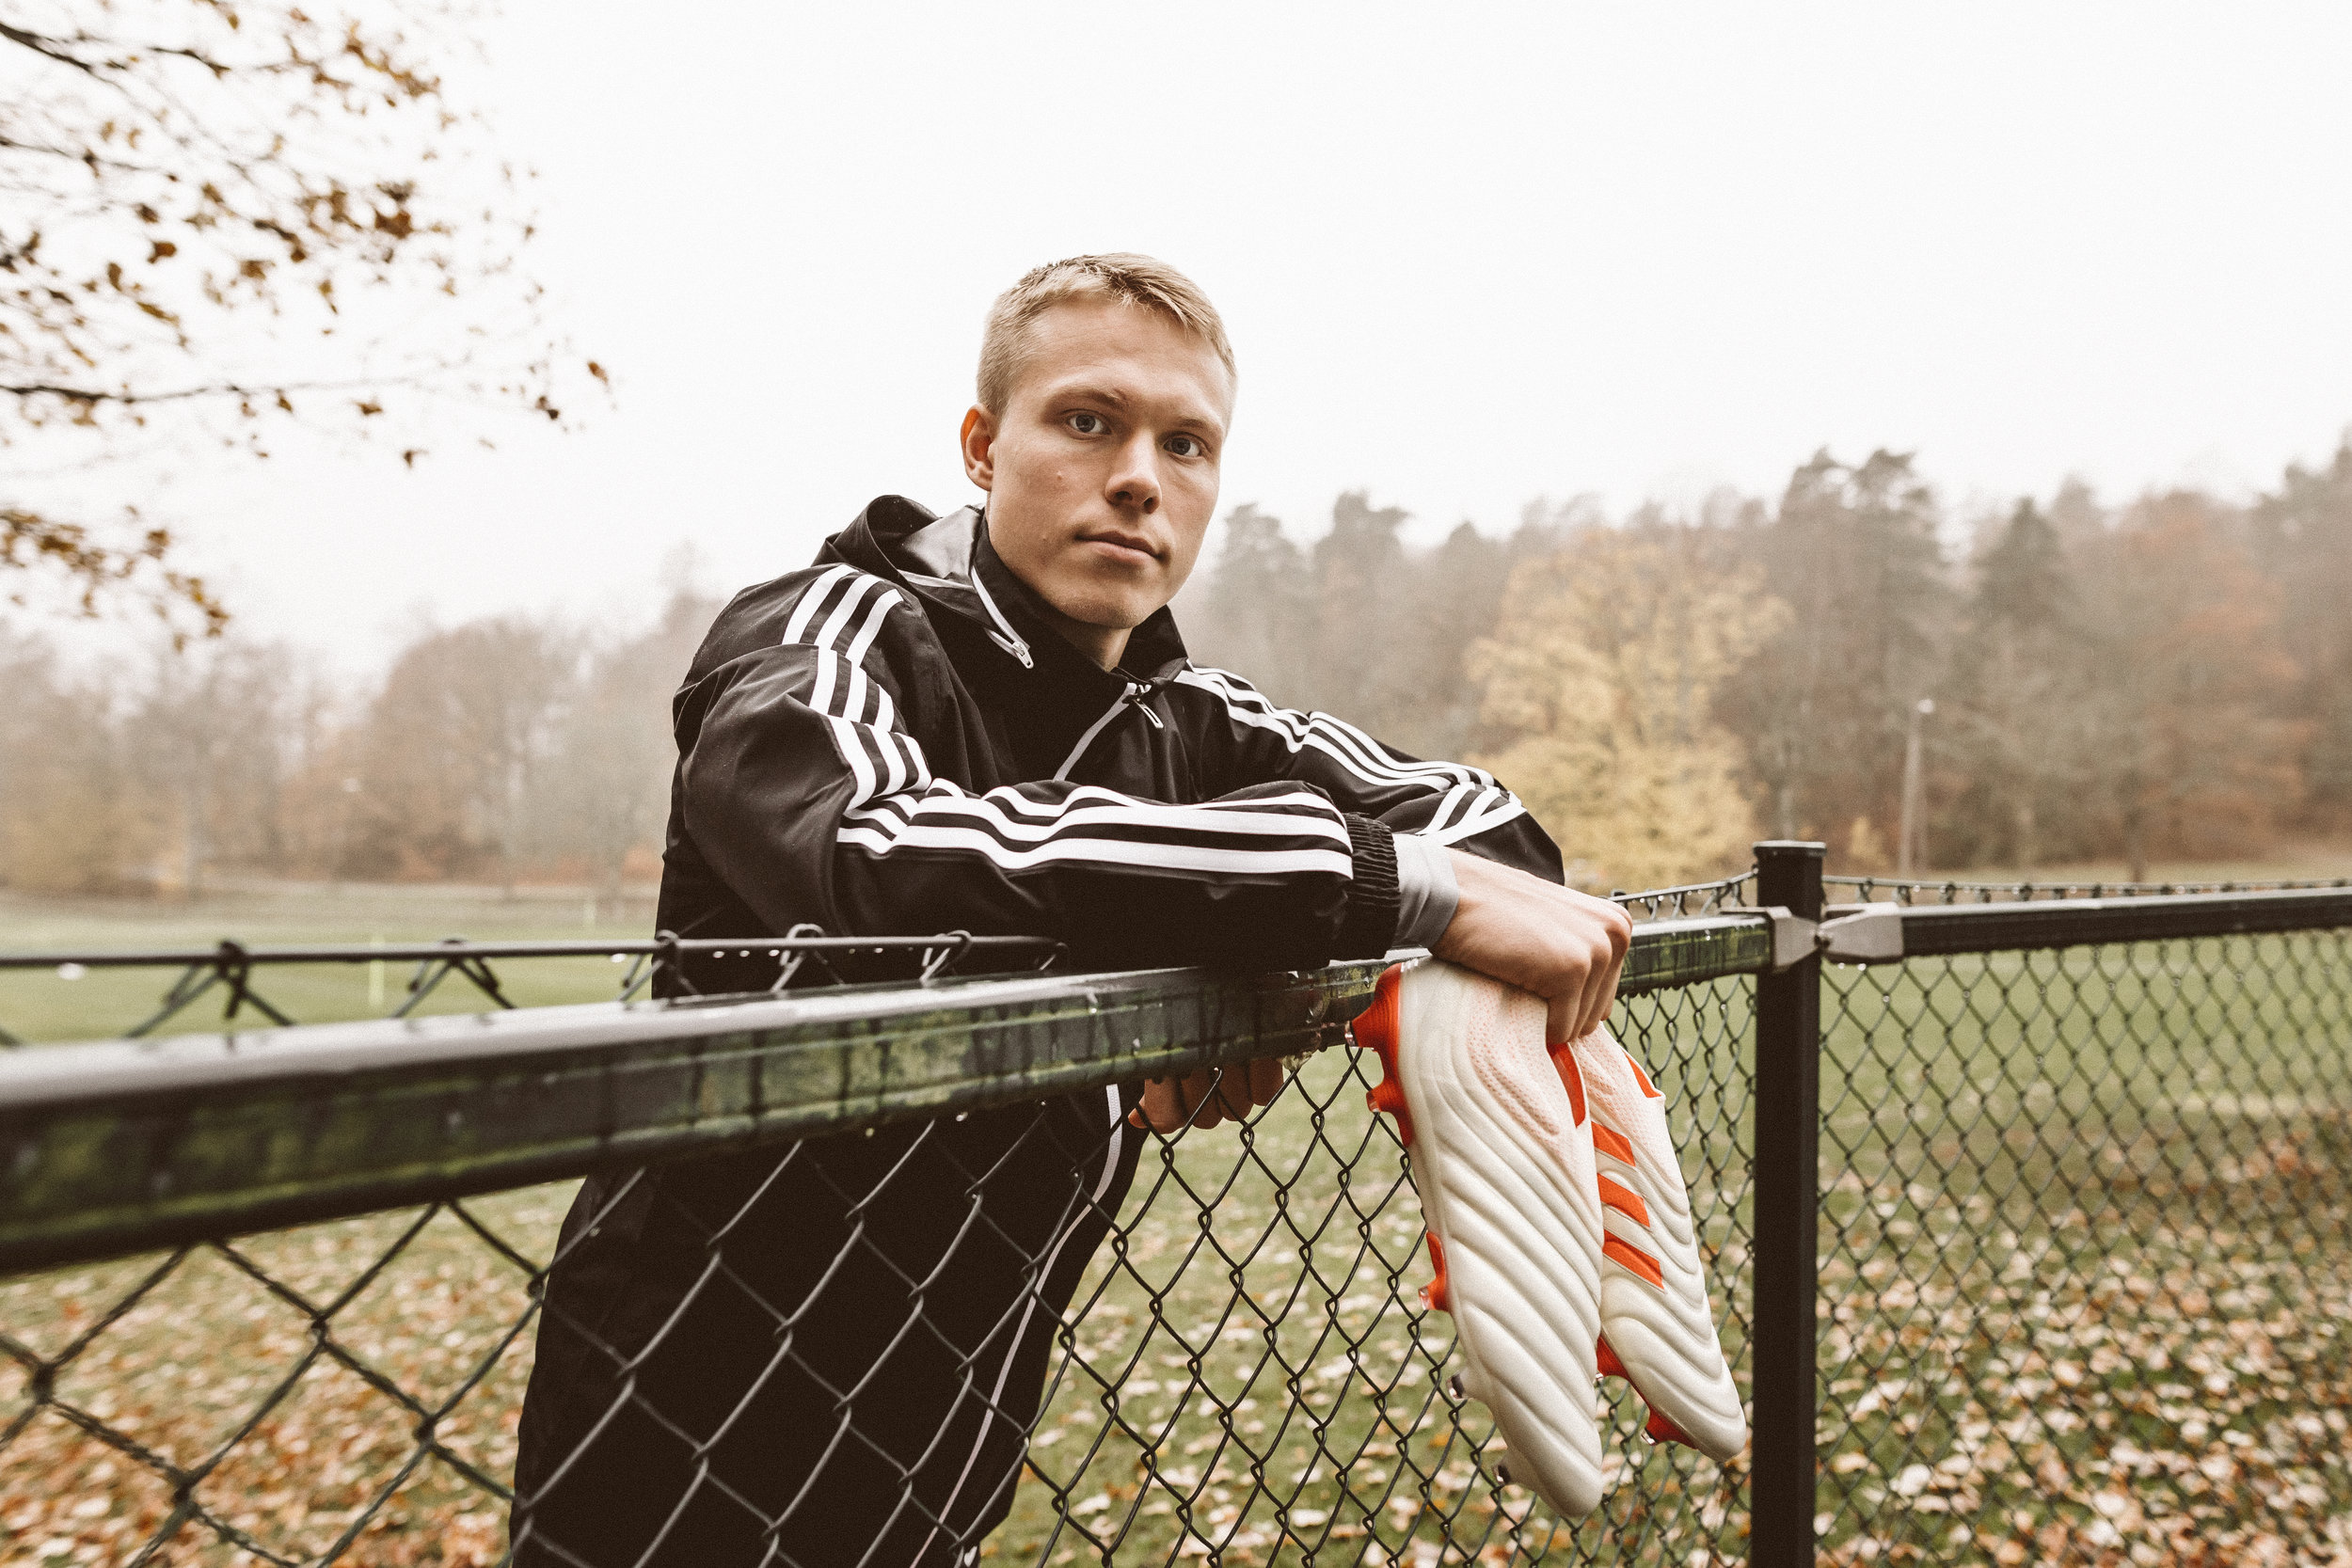 + ADIDAS +INITIATOR PACK - For this release of the adidas Initiator Pack I was shooting with both Swedish and Norwegian soccer players so check it out.+ Posted December 2018 +